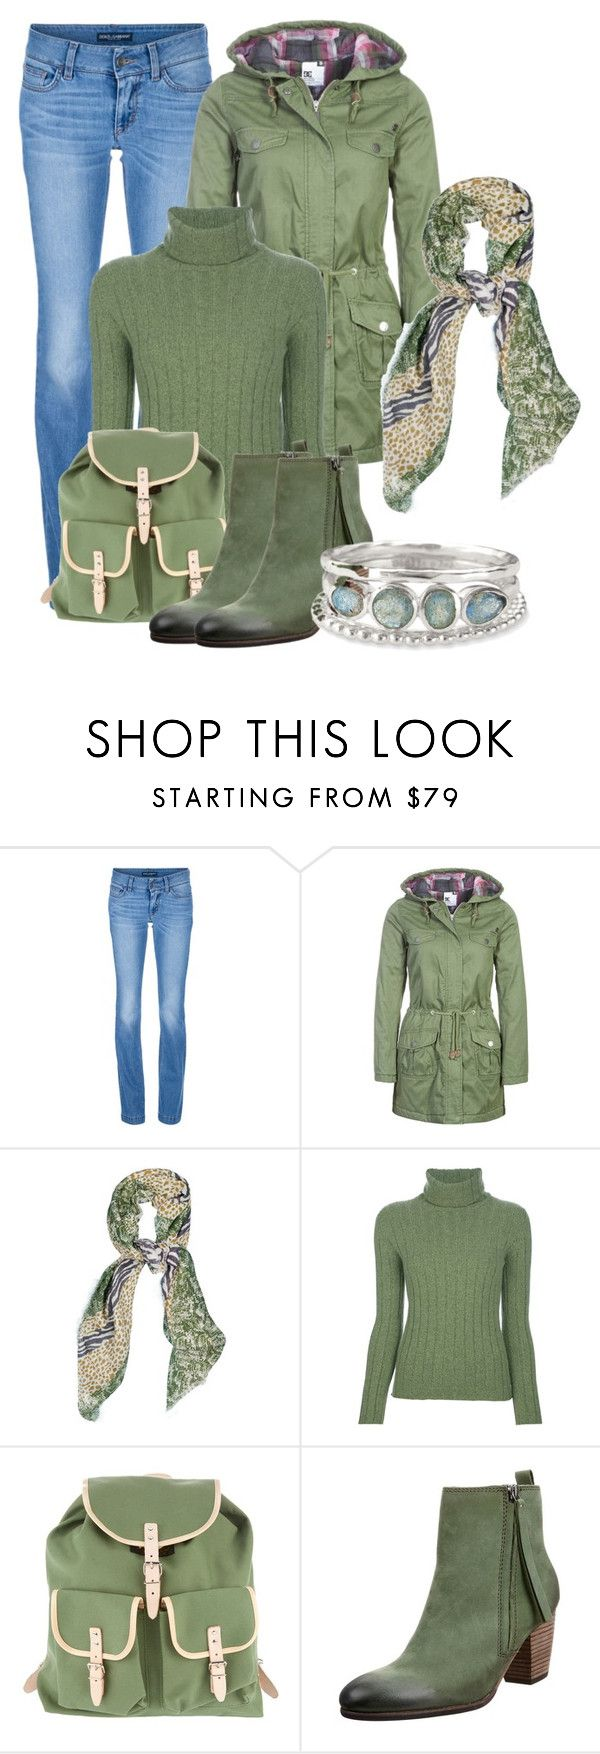 """""""Contest"""" by dgia ❤ liked on Polyvore featuring Dolce&Gabbana, DC Shoes, Mercy Delta, Chanel, Kennel + Schmenger and Stella & Dot"""